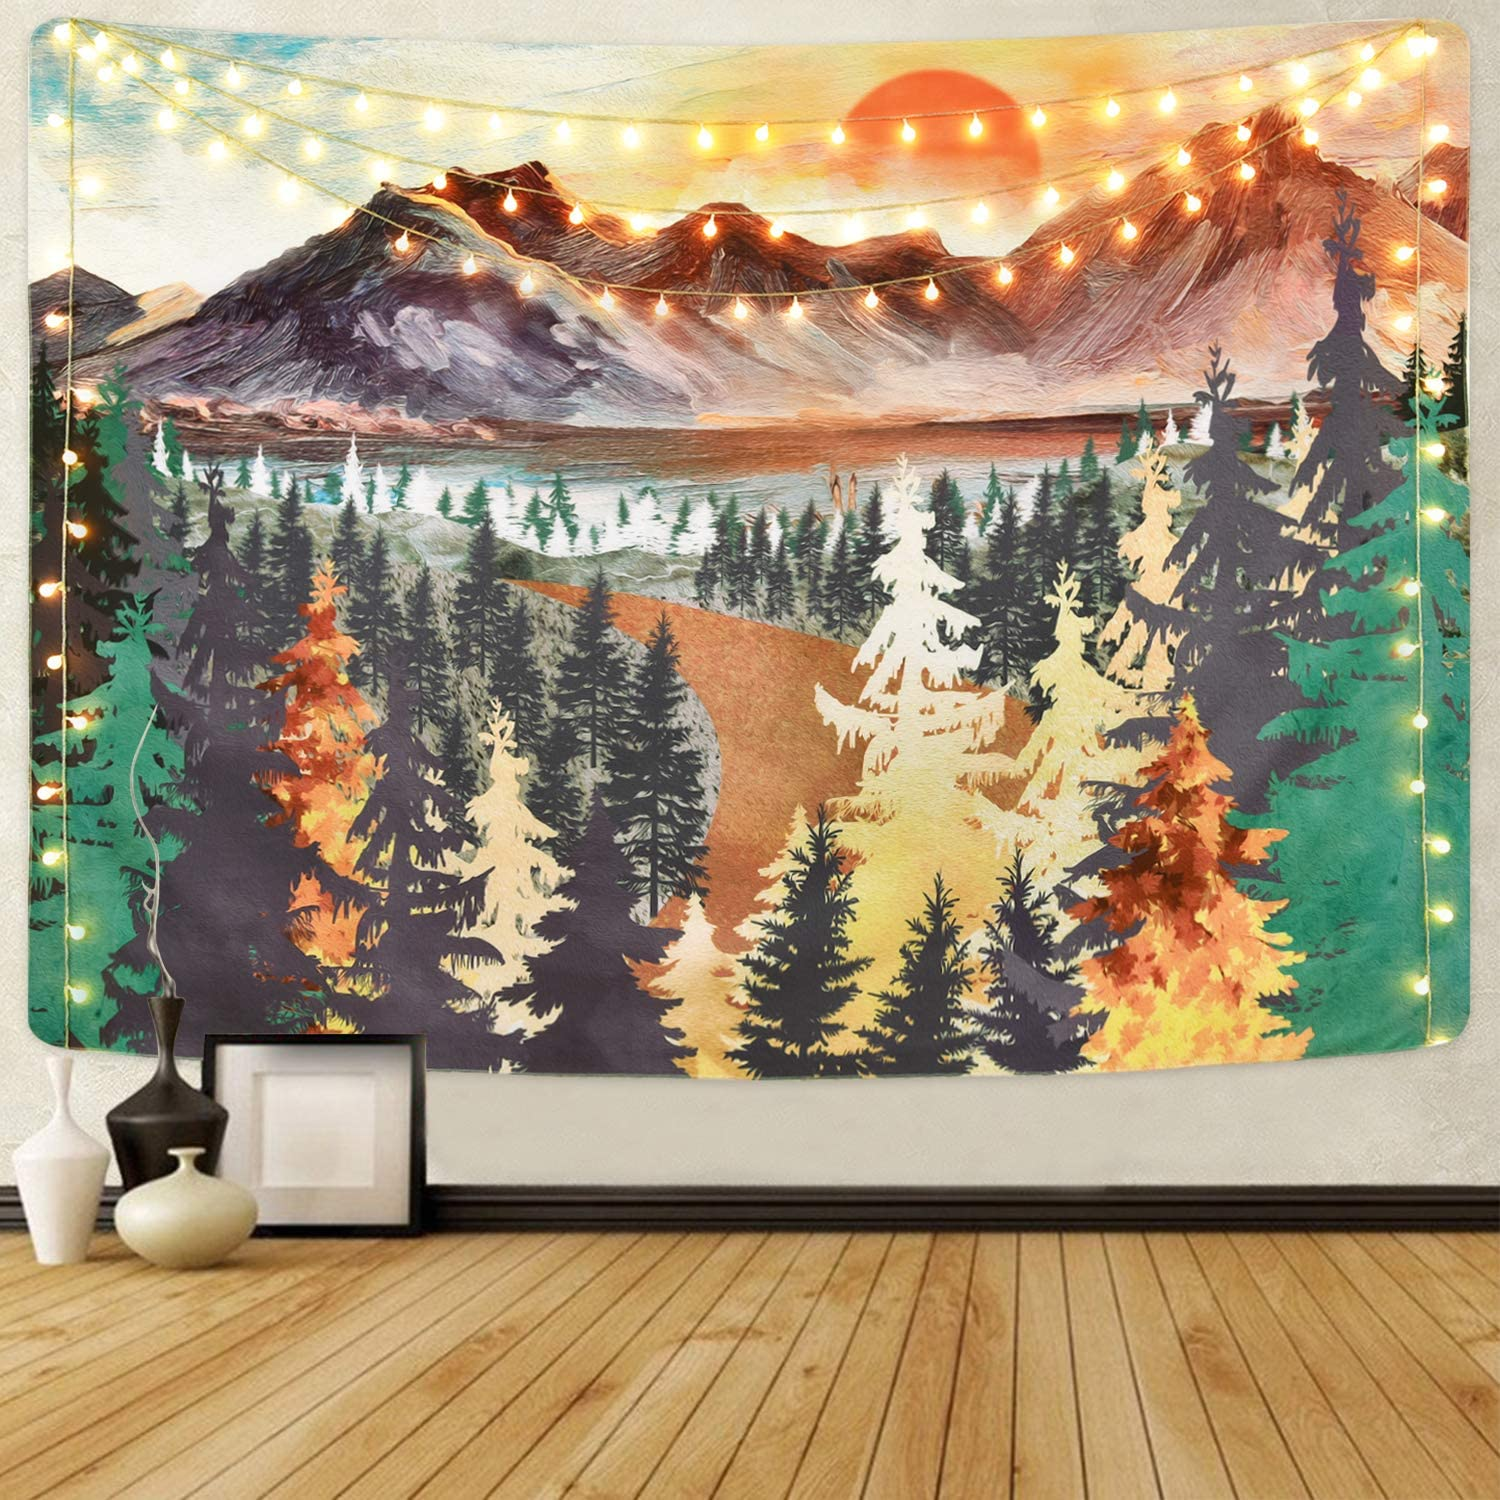 Mountain Tapestry Sunset Tapestries Forest Trees Tapestry Nature Landscape Art Tapestry Wall Hanging for Room(59.1 x 59.1 inches)